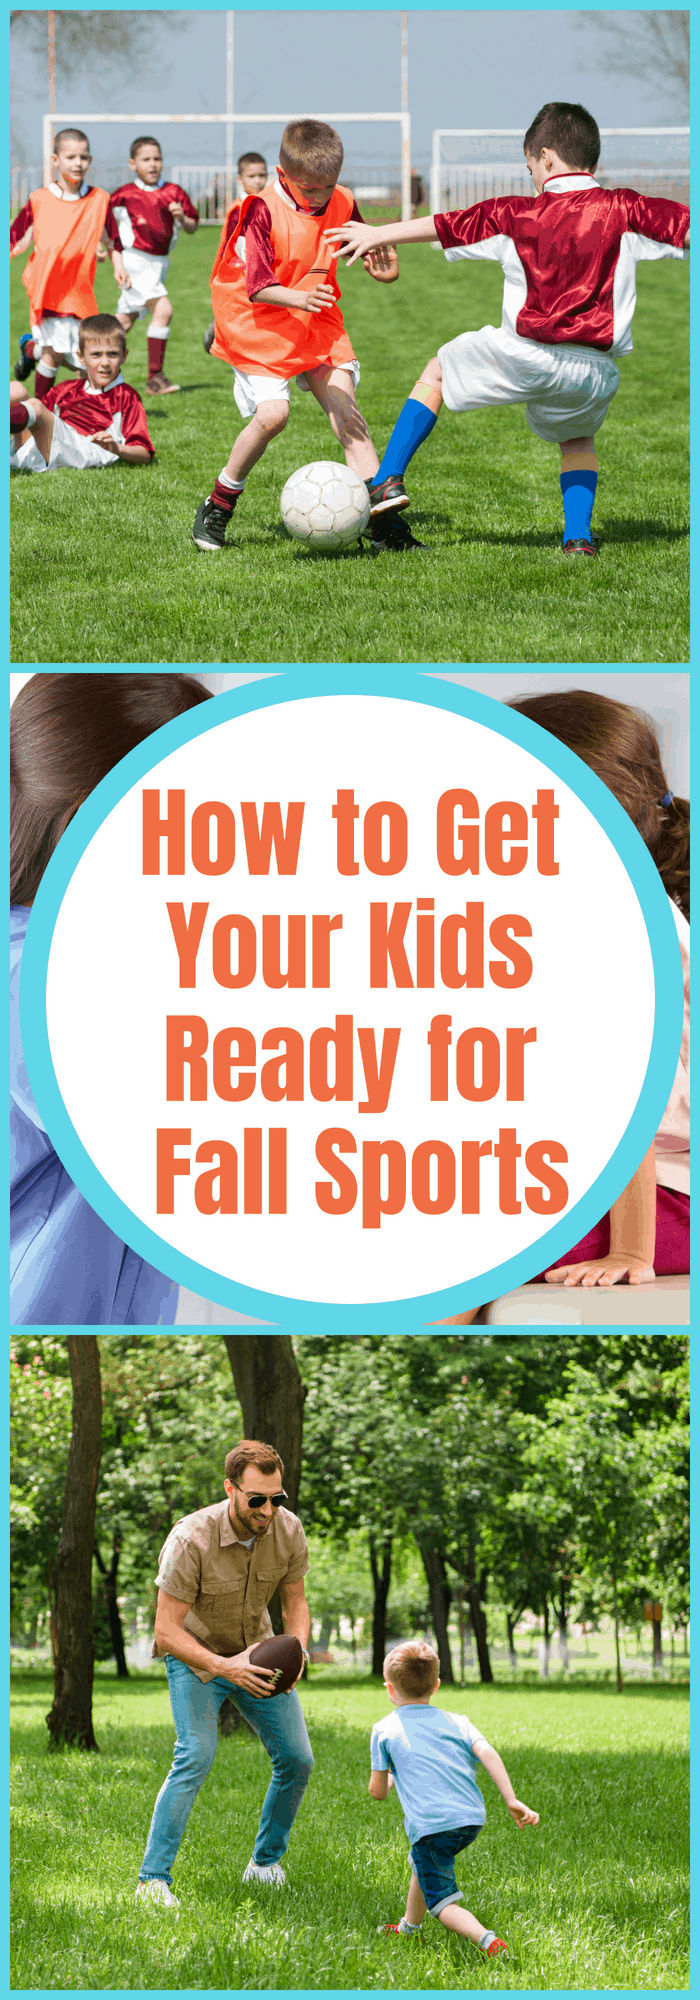 How to Get Your Kids Ready for Fall Sports